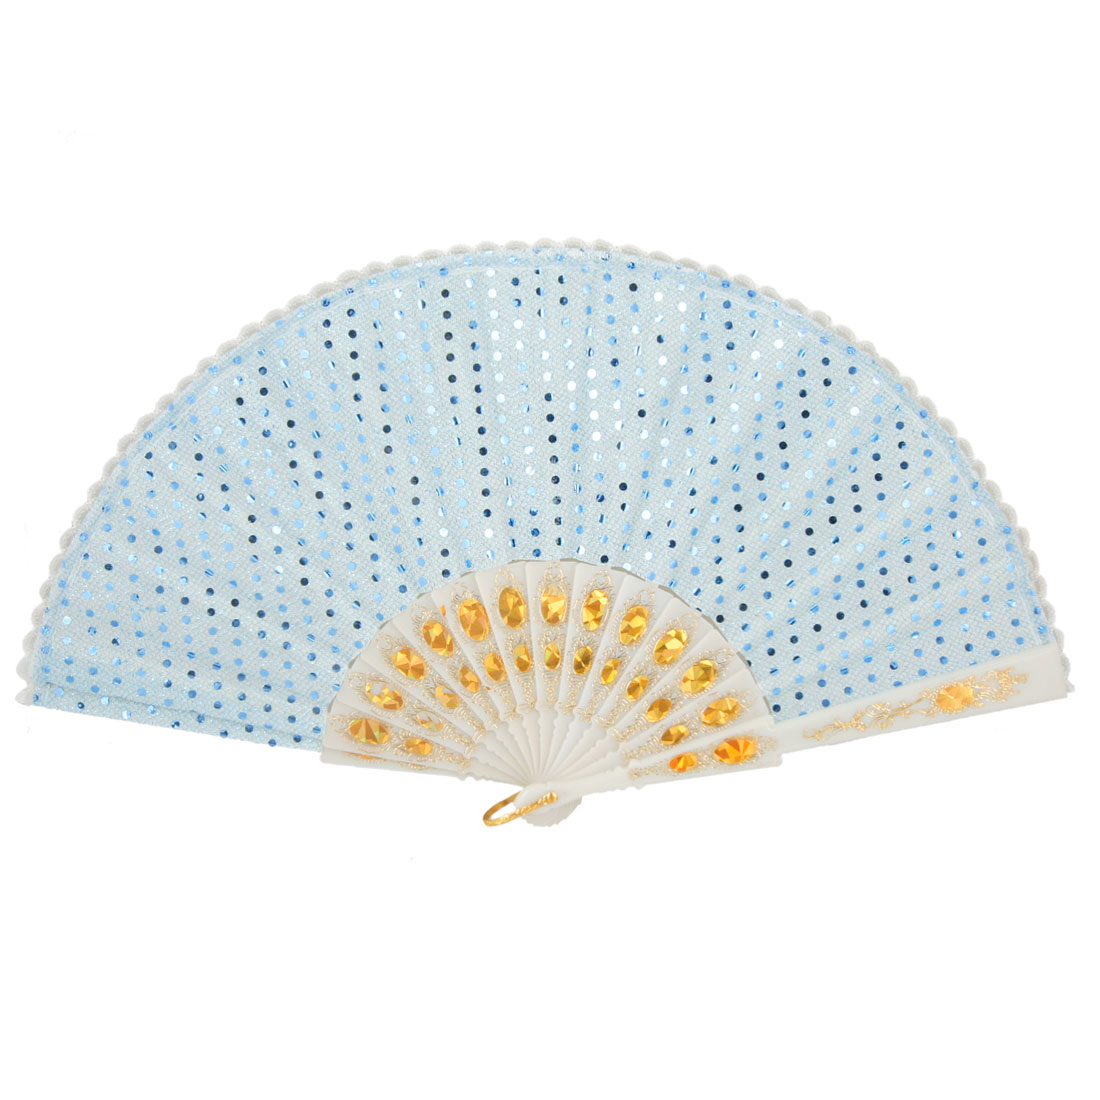 White Lace Plastic Frame Circle Paillette Decor Light Blue Foldable Hand Fan